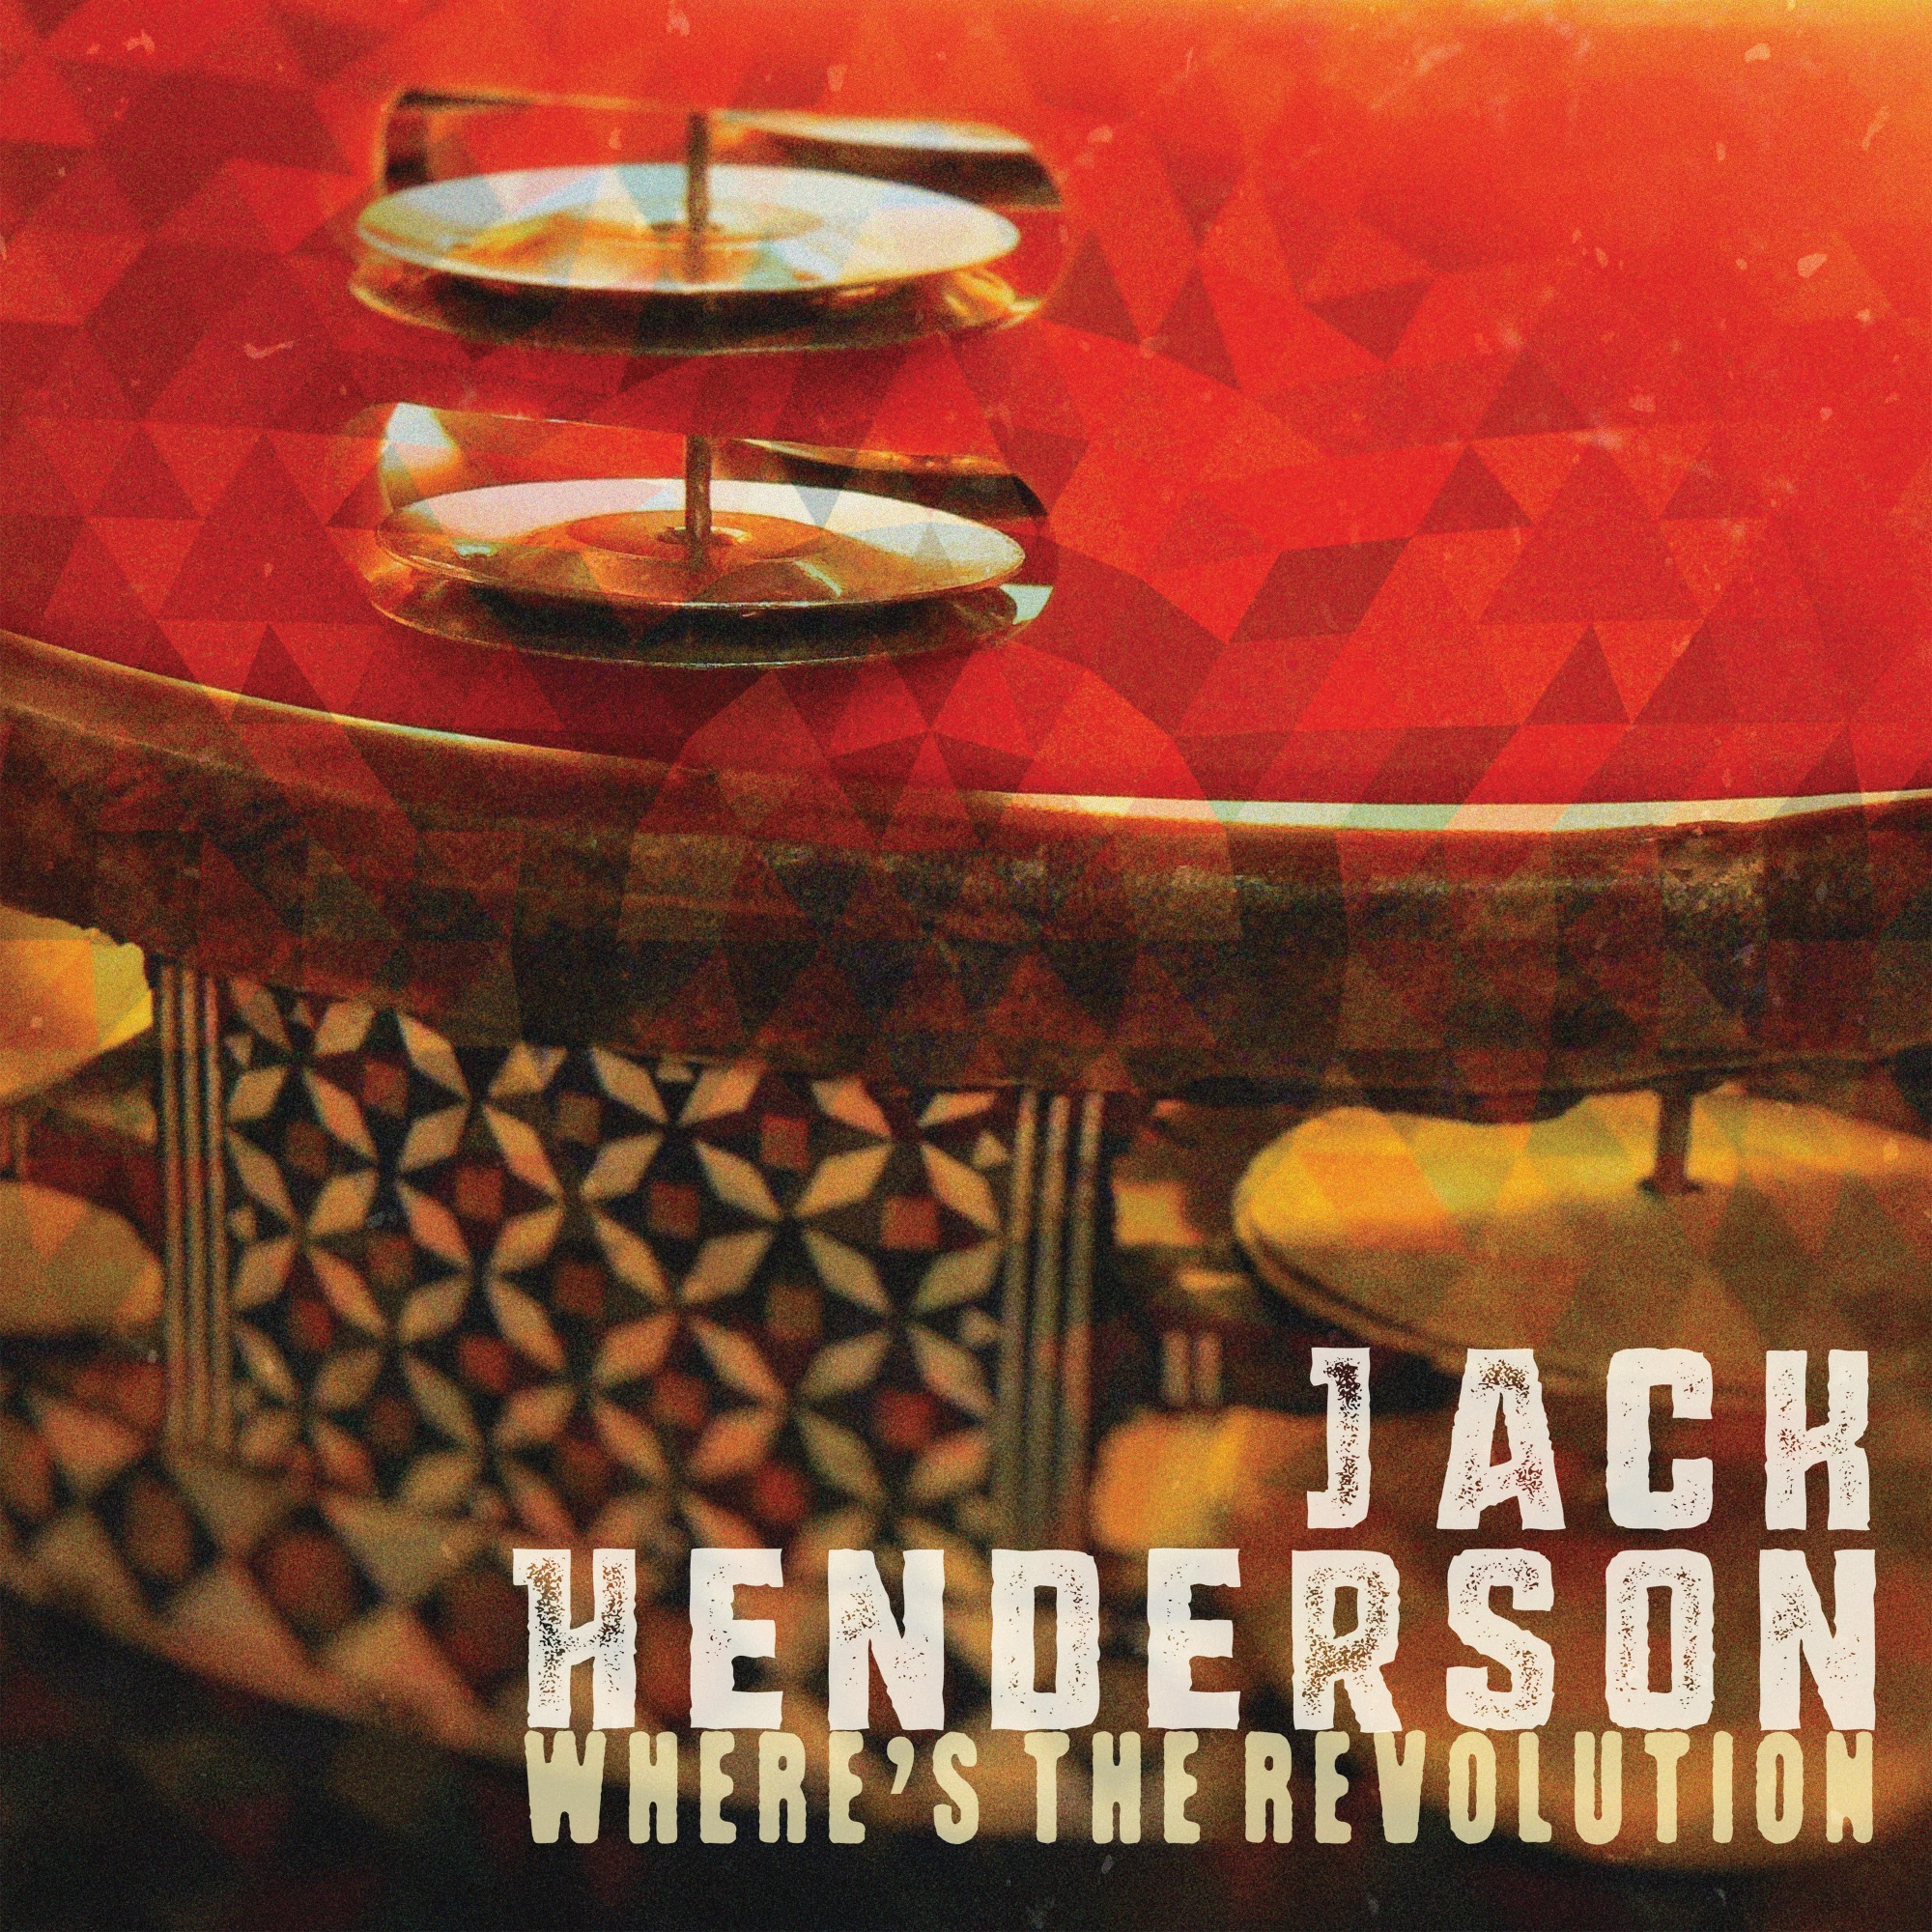 4Kpxl_JH_Wheres_the_Revolution _sleeve_front-min